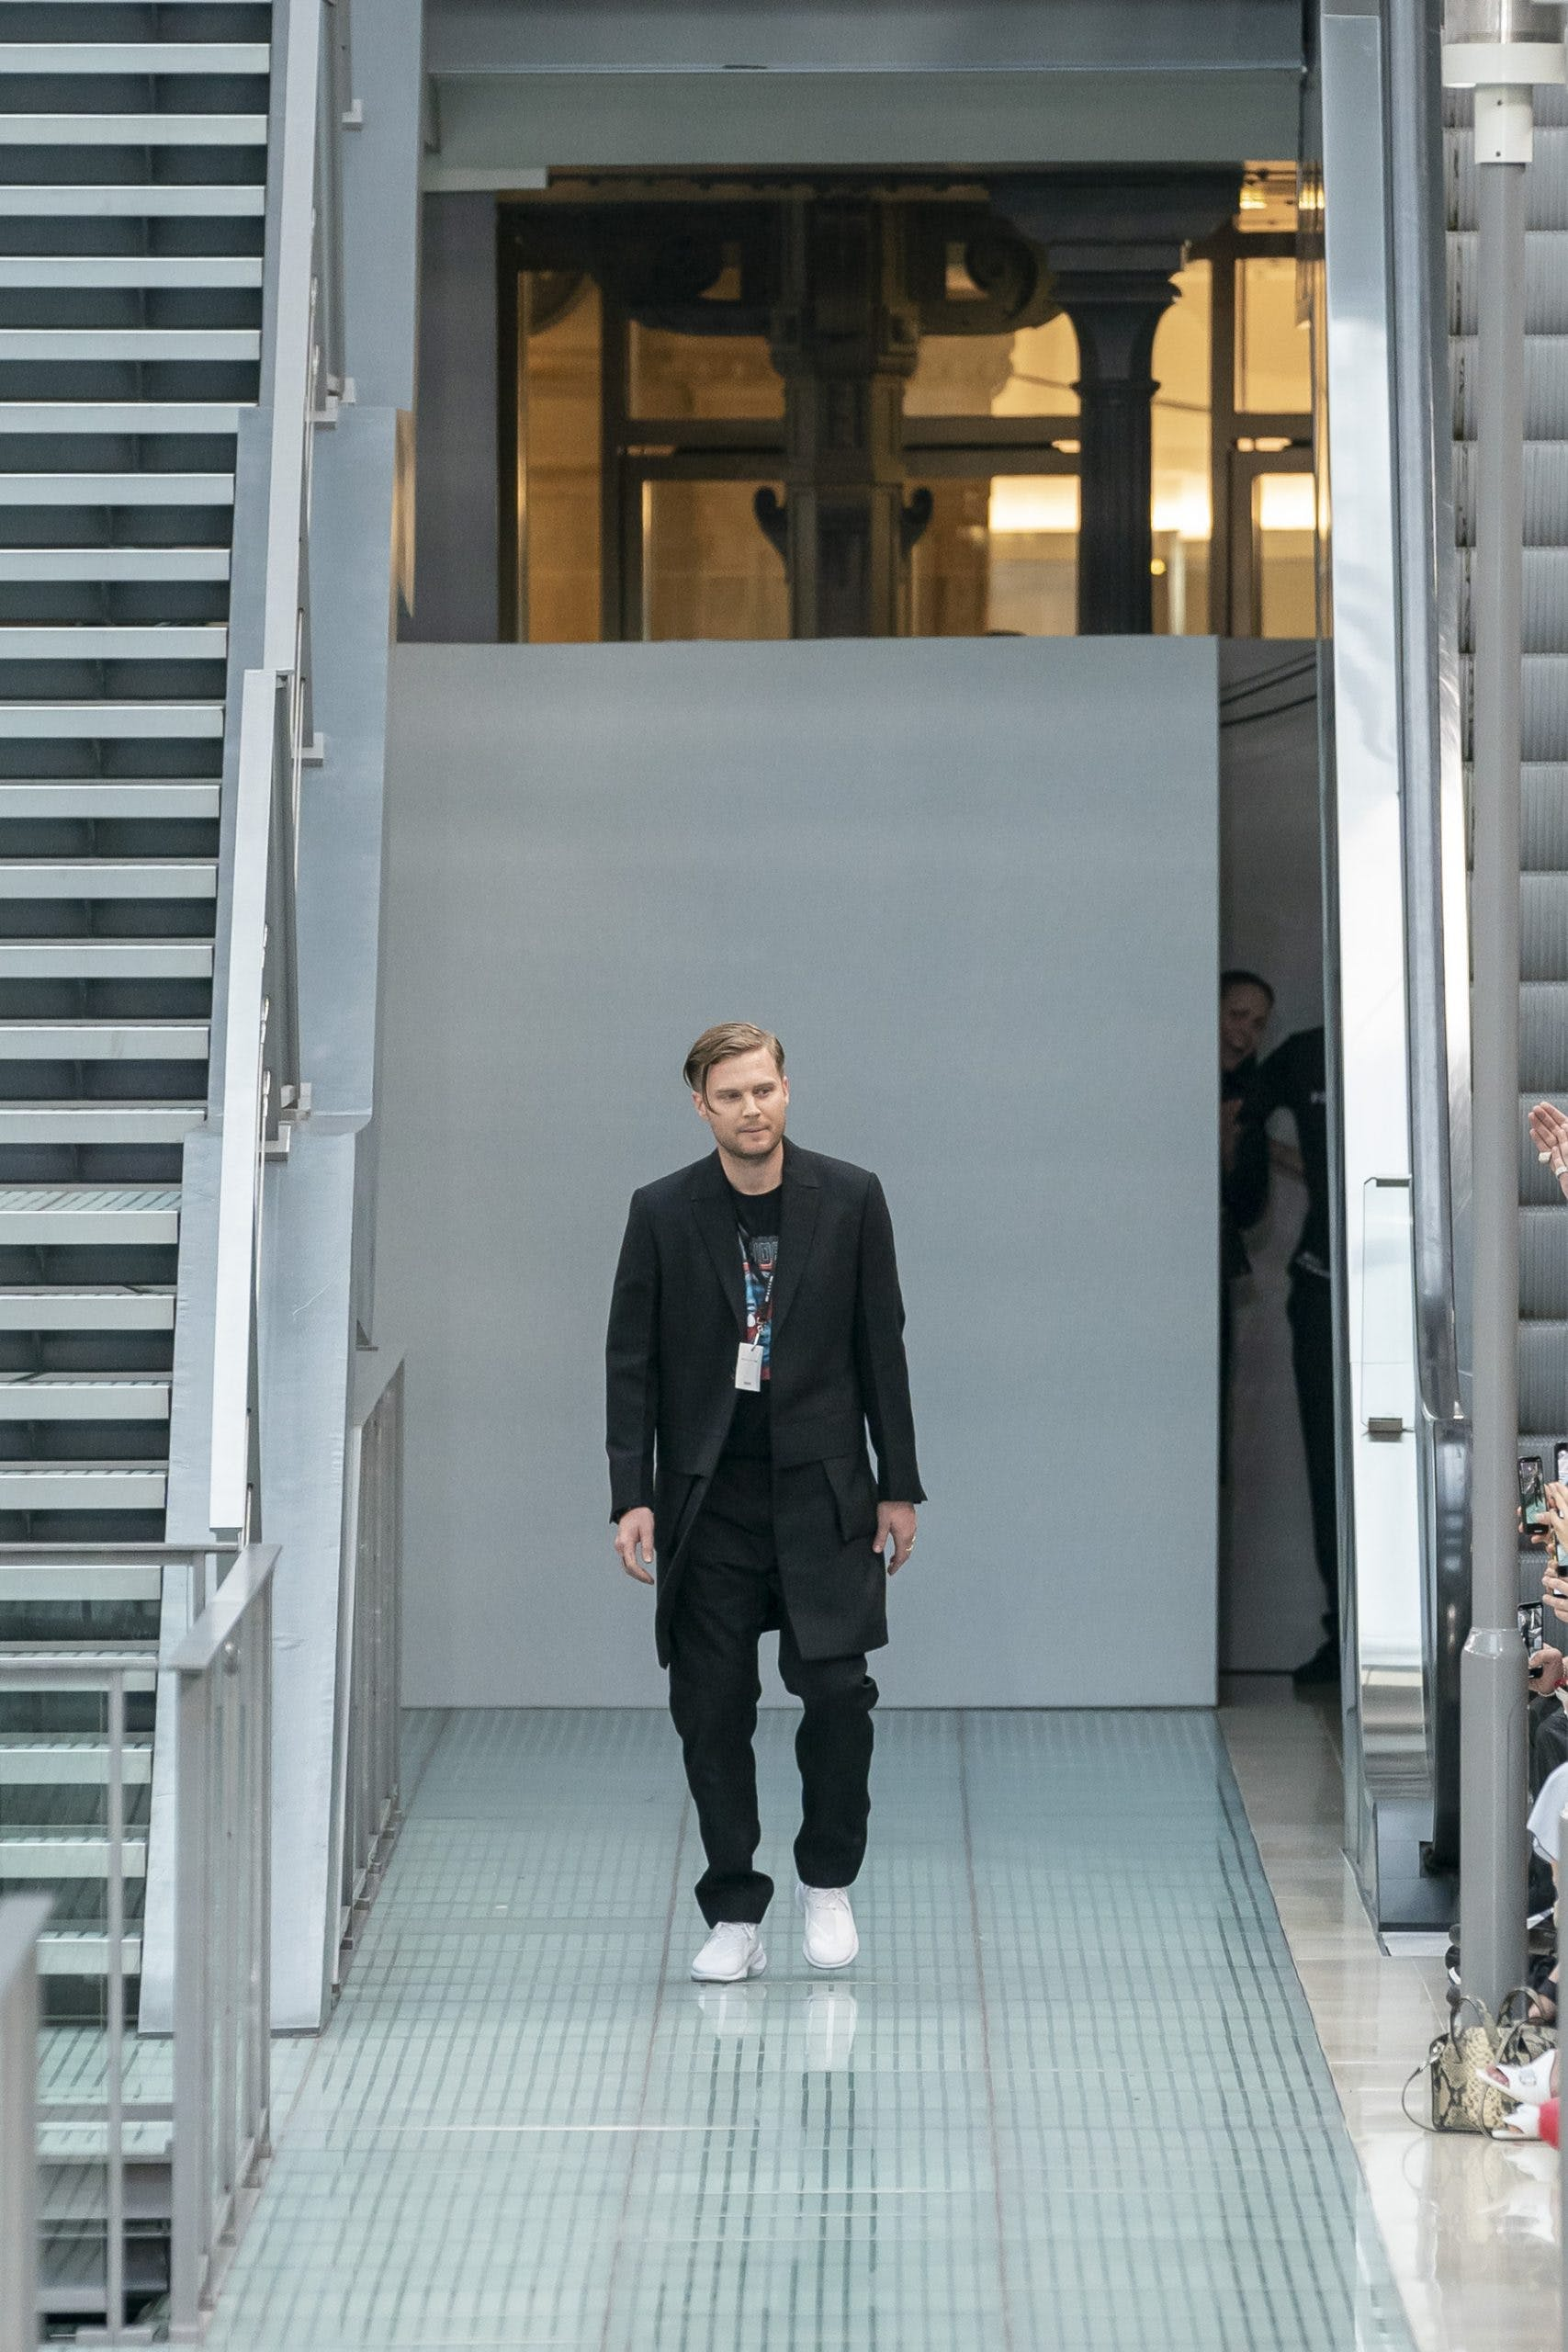 GIVENCHY NAMES MATTHEW WILLIAMS AS CREATIVE DIRECTOR